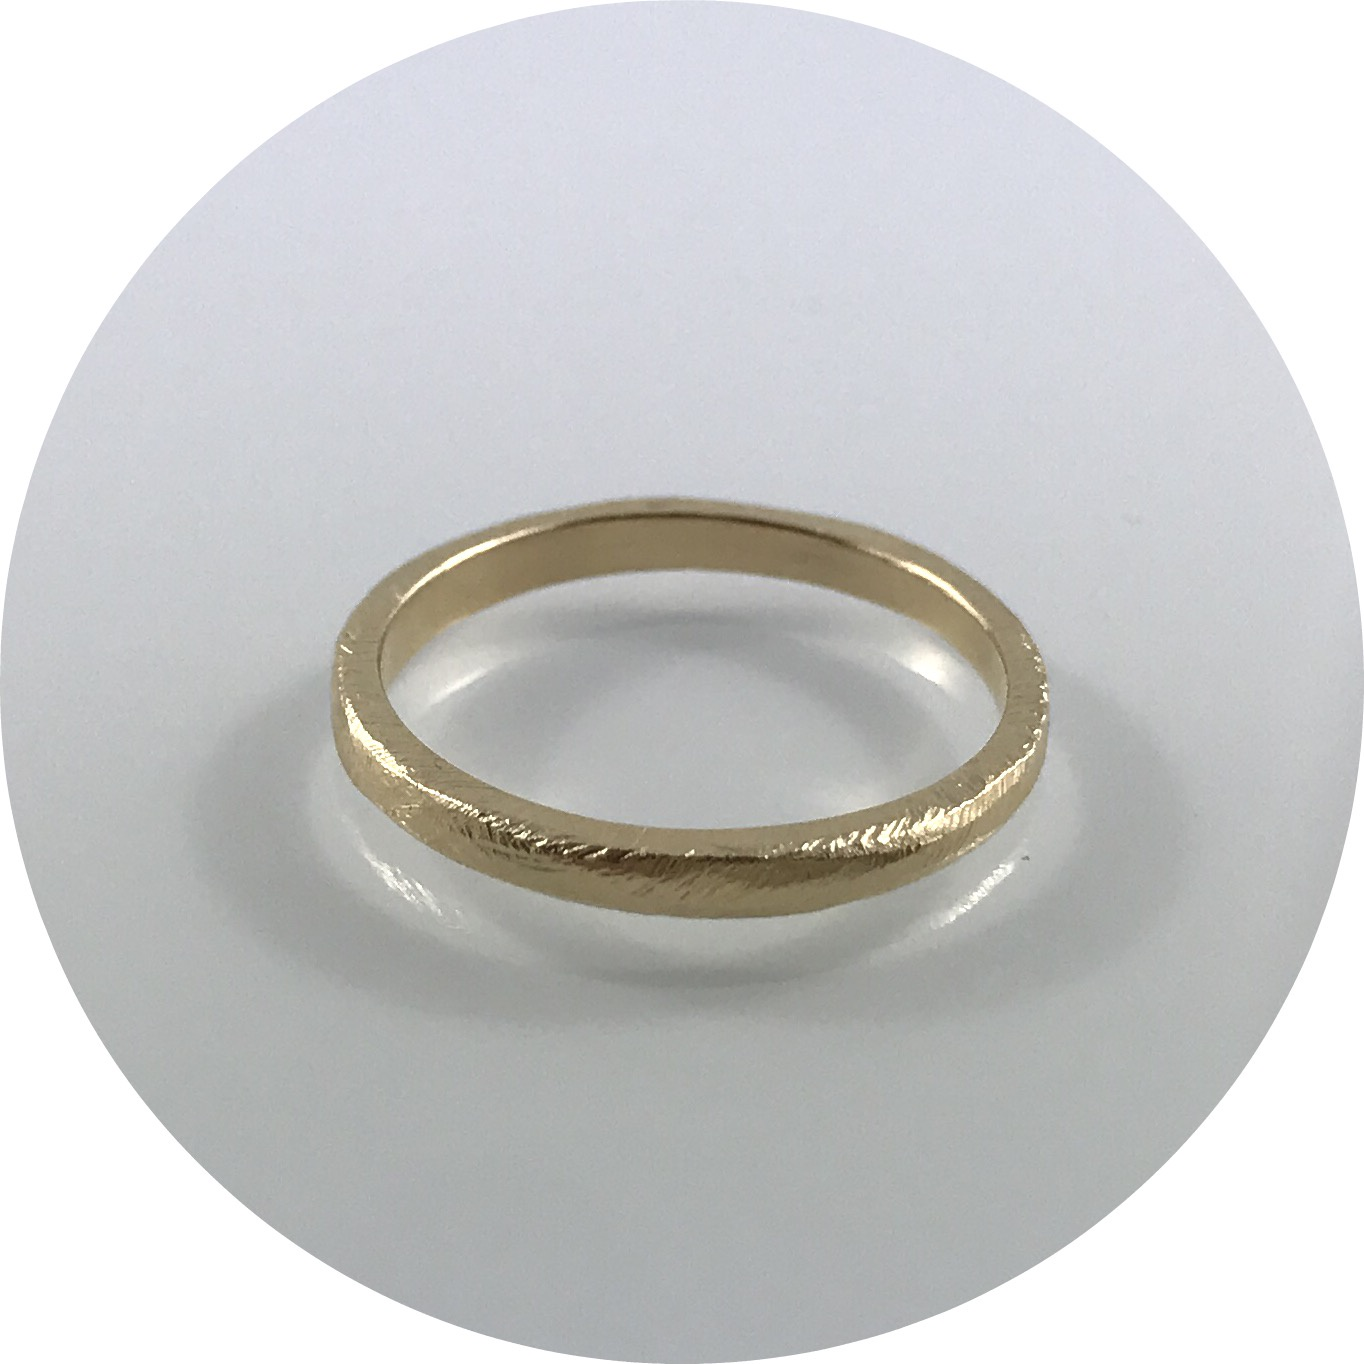 Ashleigh Moore - Fine organic stacking band in 9kt yellow gold